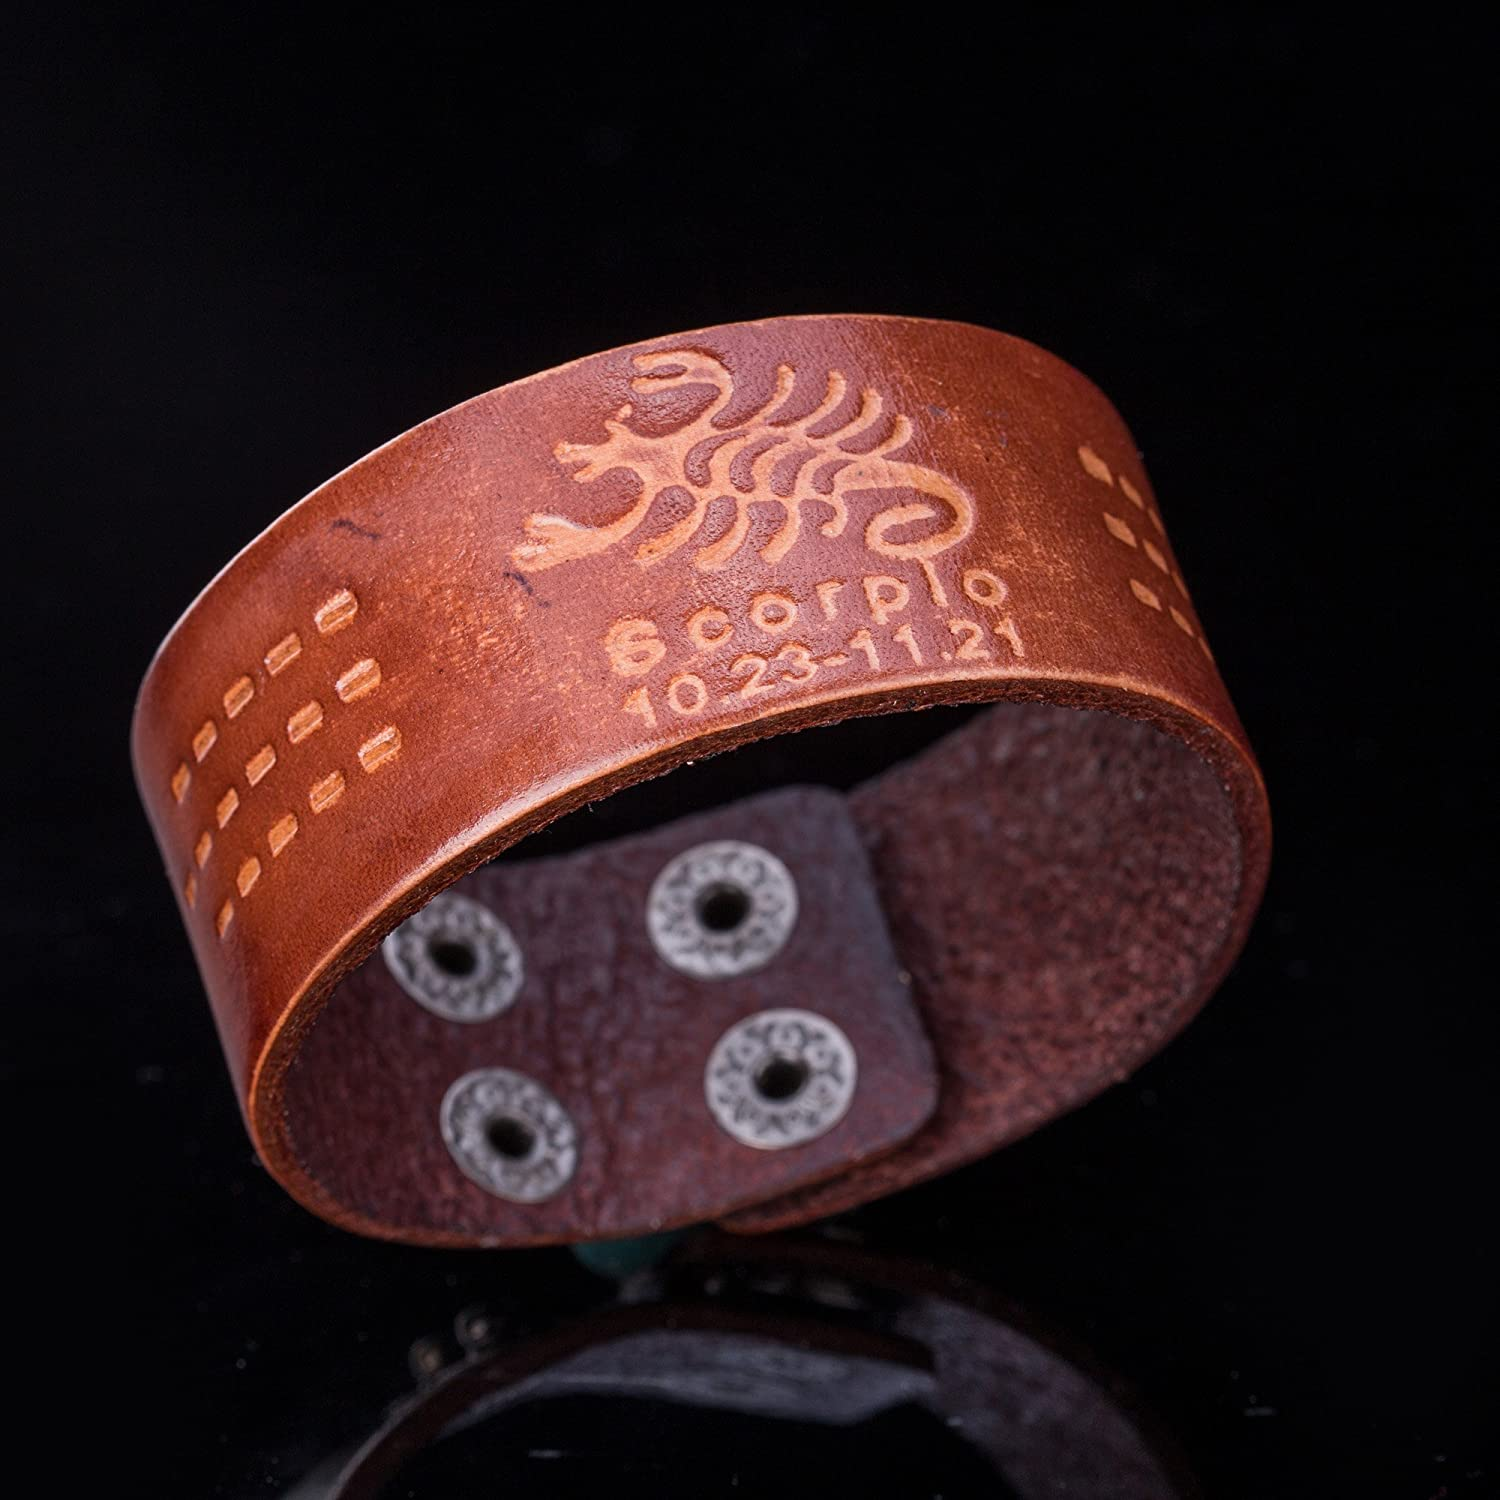 fishhook 12 Constellations Scorpio Sign Wristband Leather Bracelet for Man and Women